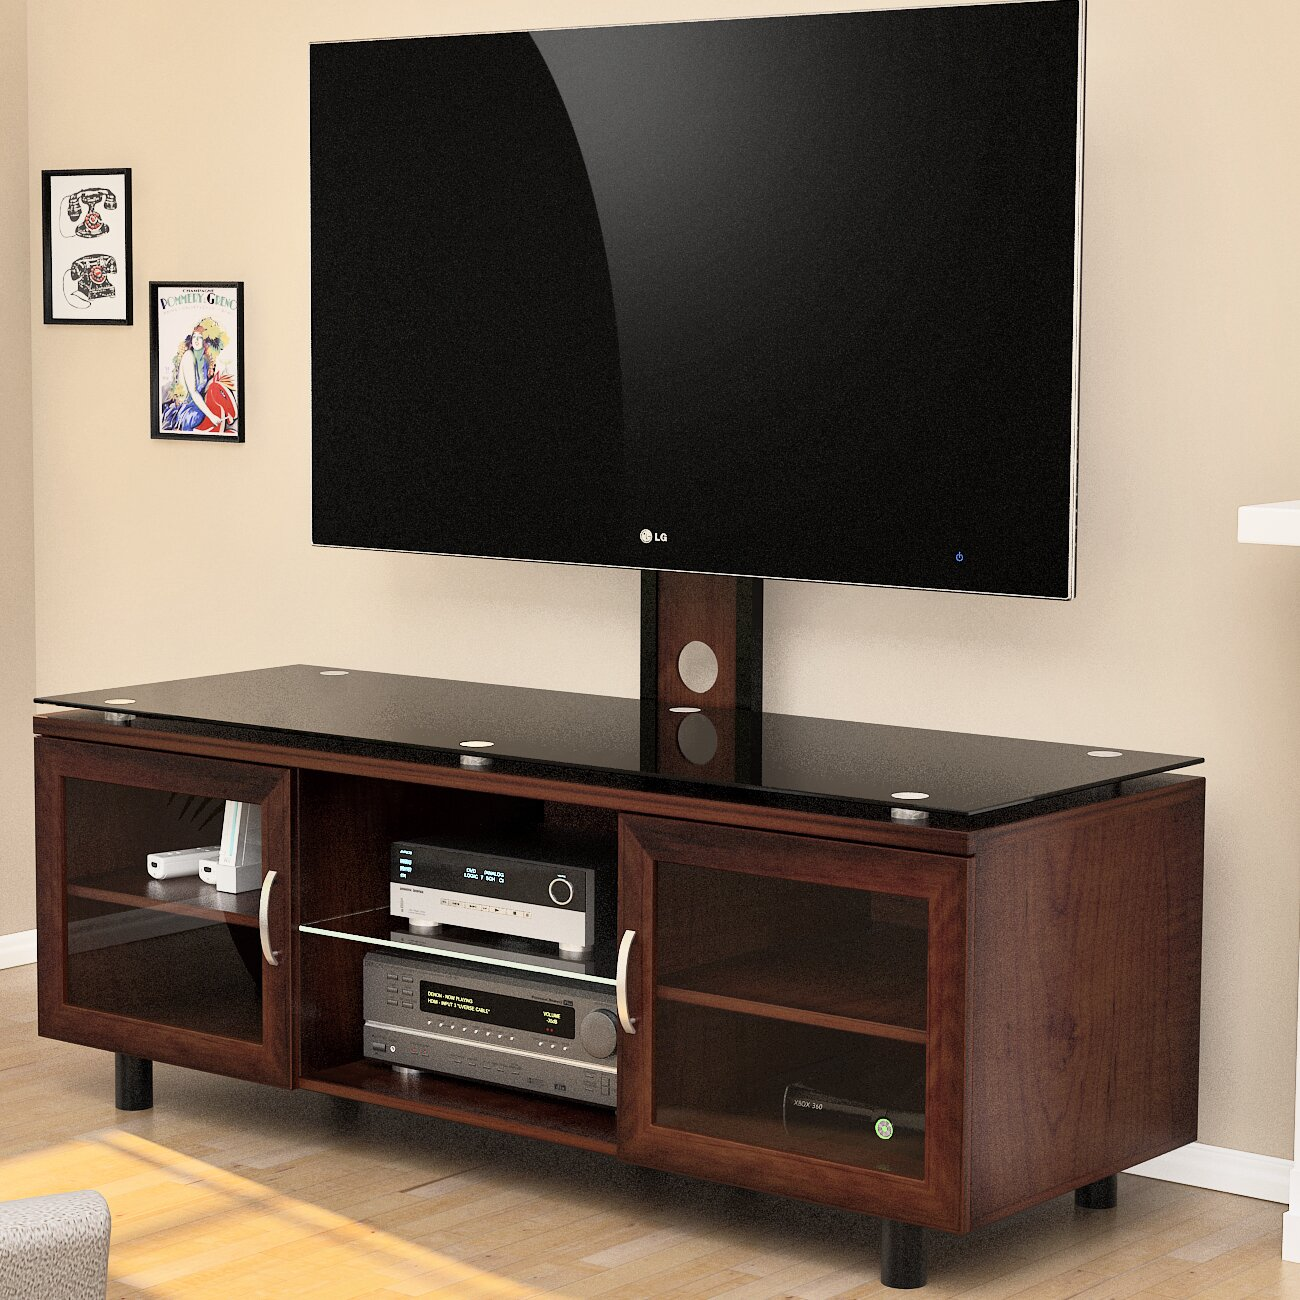 z line tv wall mount instructions